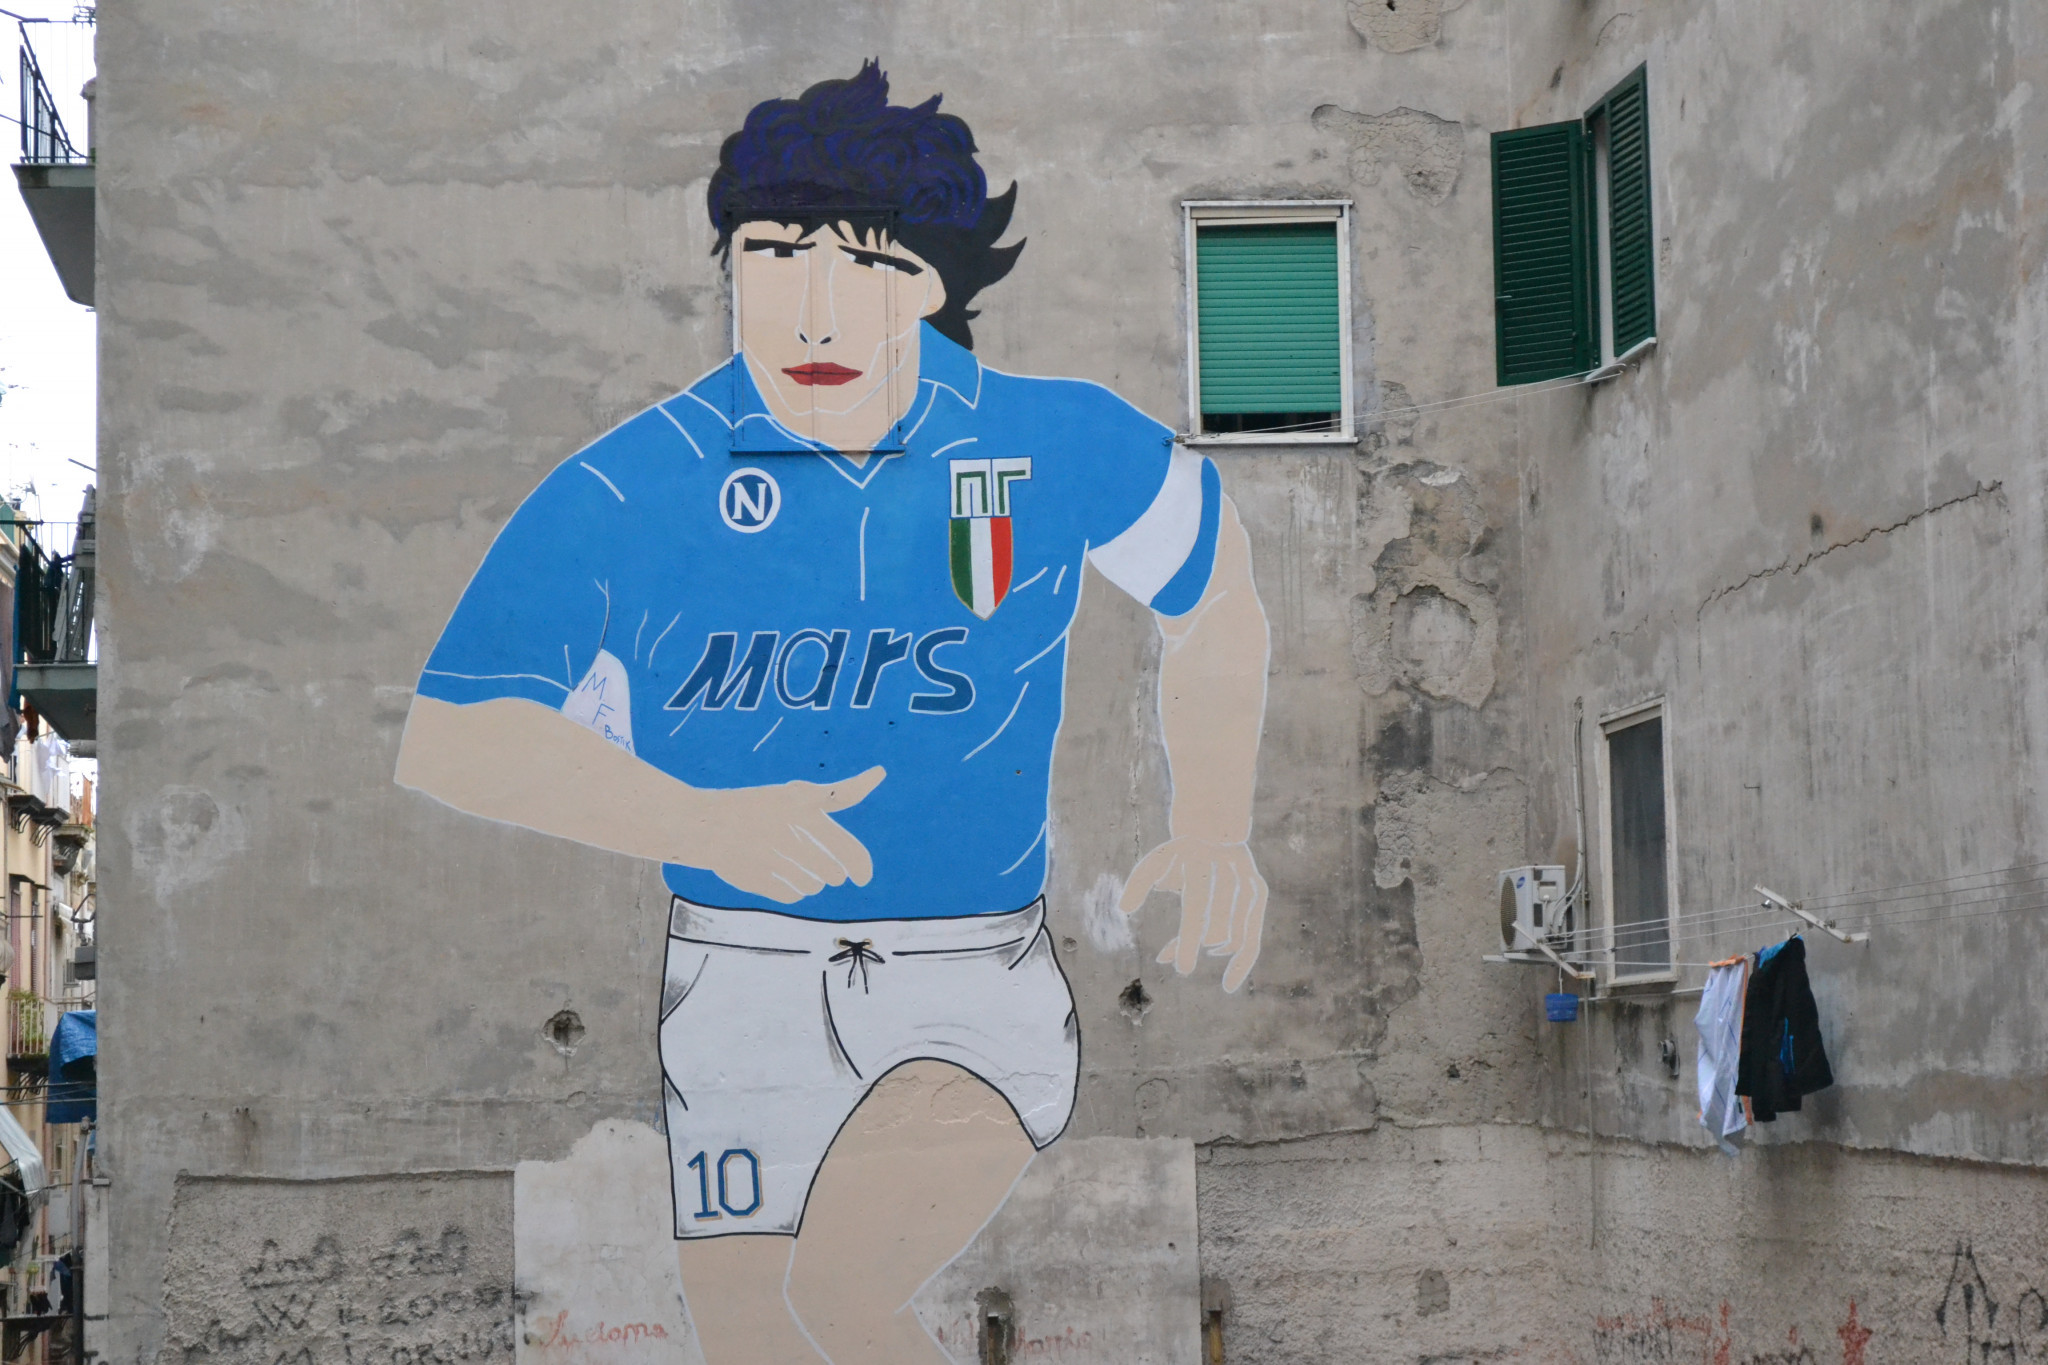 Diego Naples remains a revered figure in Naples, with his image still appearing all over the city ©Philip Barker